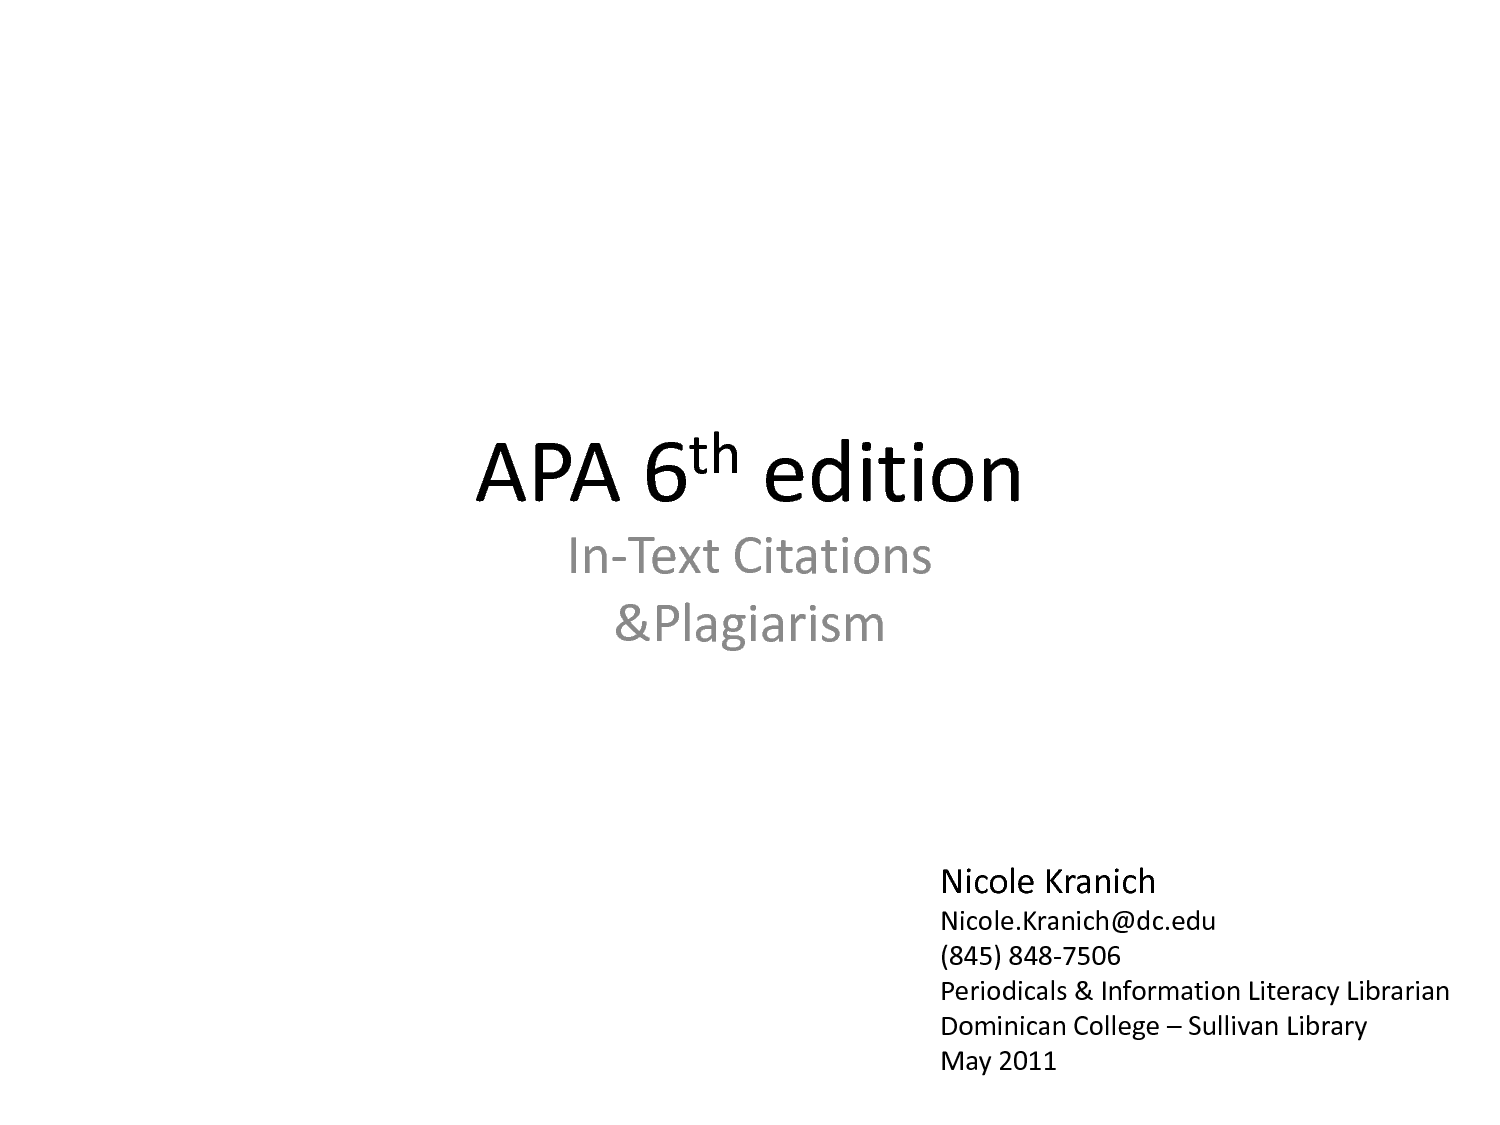 017 Apa 6th Edition Title Page Example 322635 Style Research Paper Astounding Cover Abstract Full